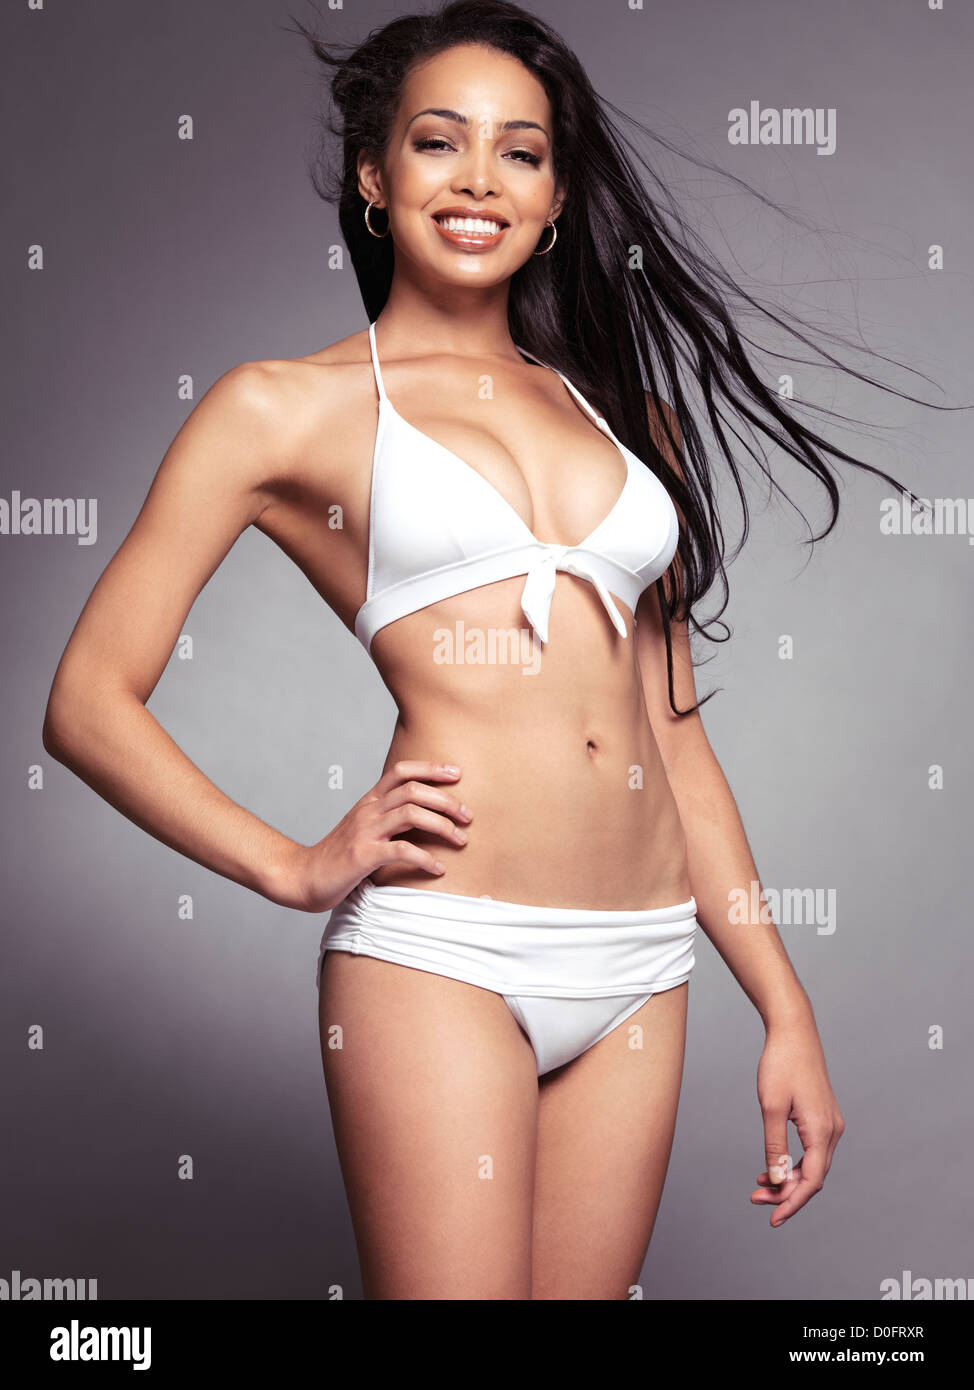 6519a0dfada Smiling young black woman wearing white bikini swimsuit isolated on gray  background